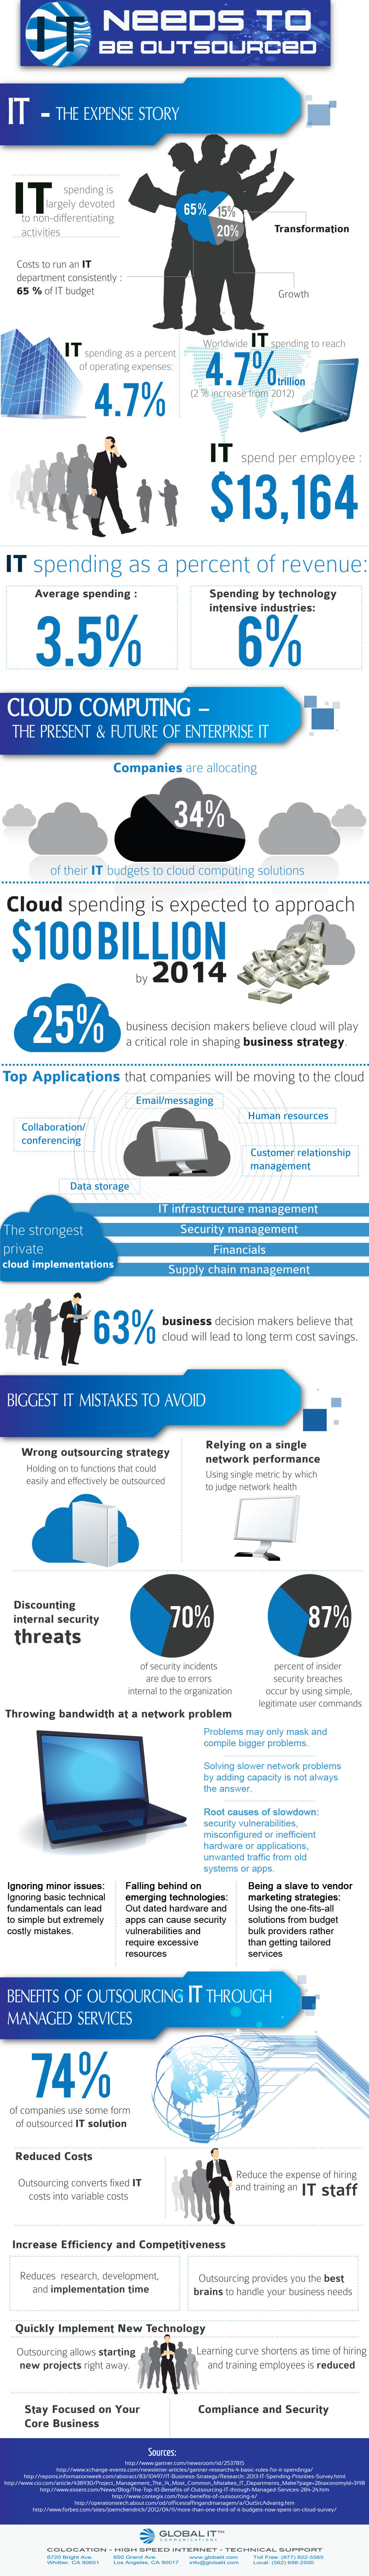 Financial Benefits of Outsourcing IT Services